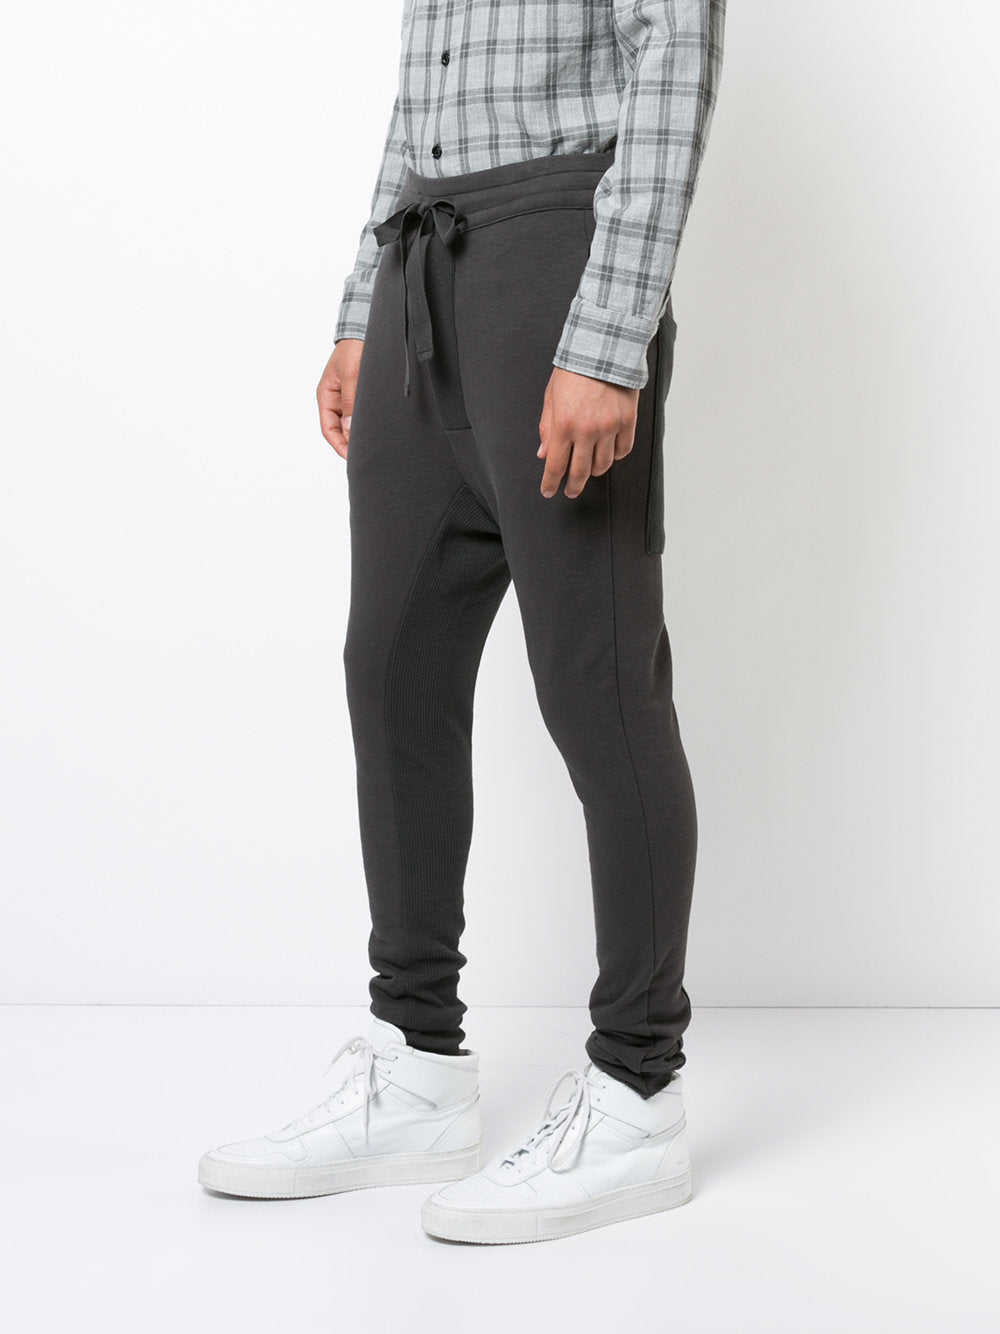 Skinny Cotton Joggers | MST-71-0-1